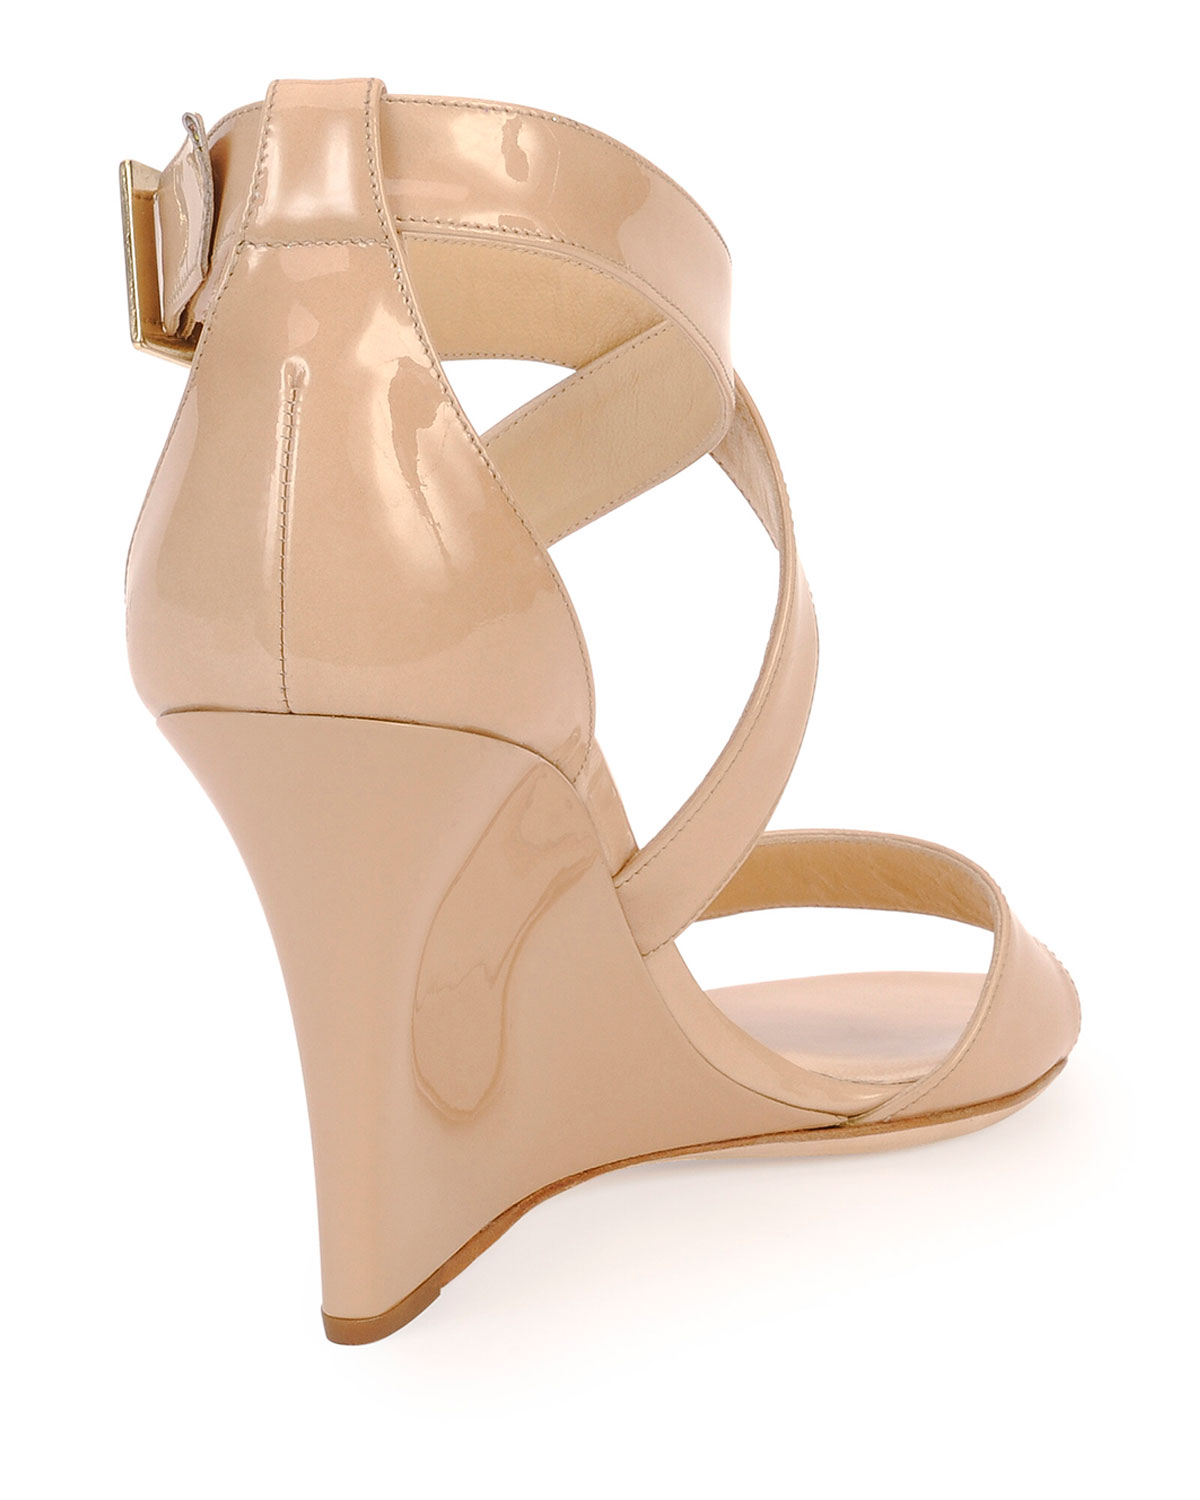 5b75baa0a14 Lyst - Jimmy Choo Fearne Criss-Cross Wedge Sandals in Natural